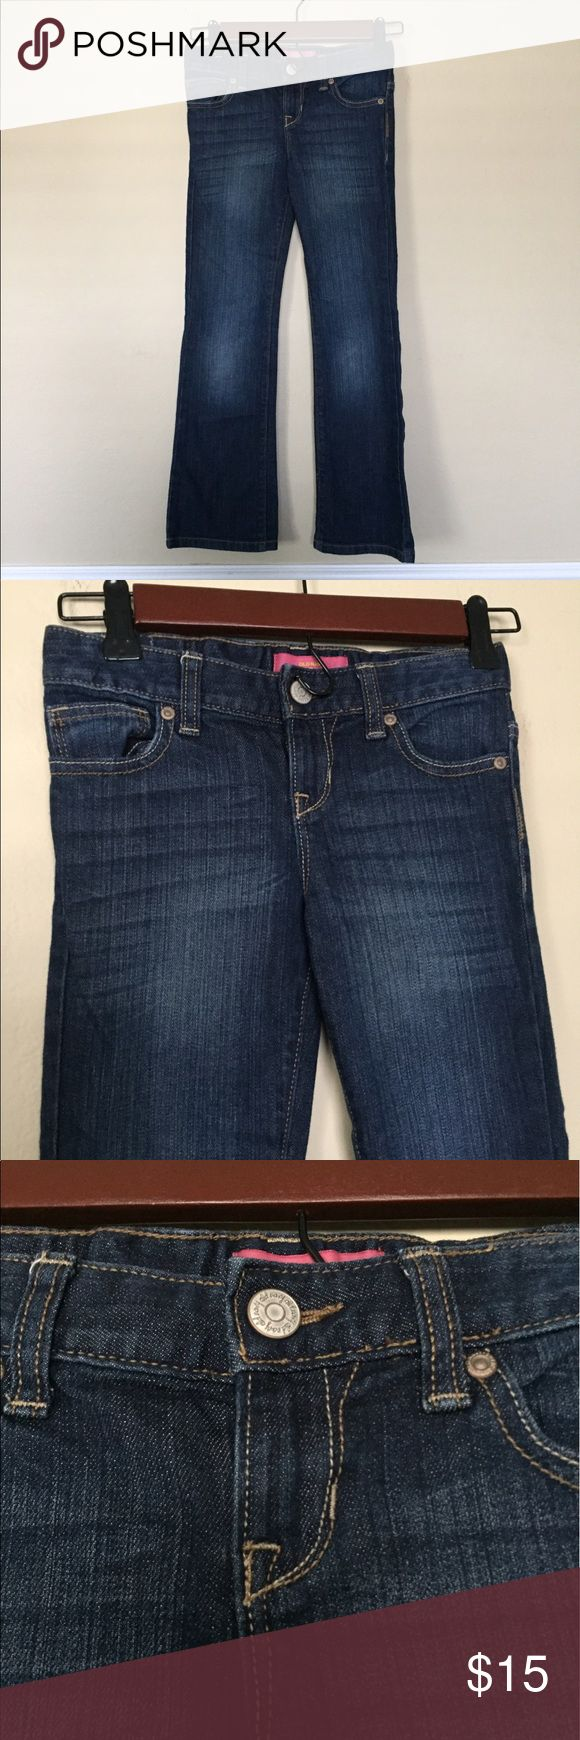 Old Navy Jeans Girls old navy boot cut style jeans, size 7/medium. In great condition. Old Navy Bottoms Jeans